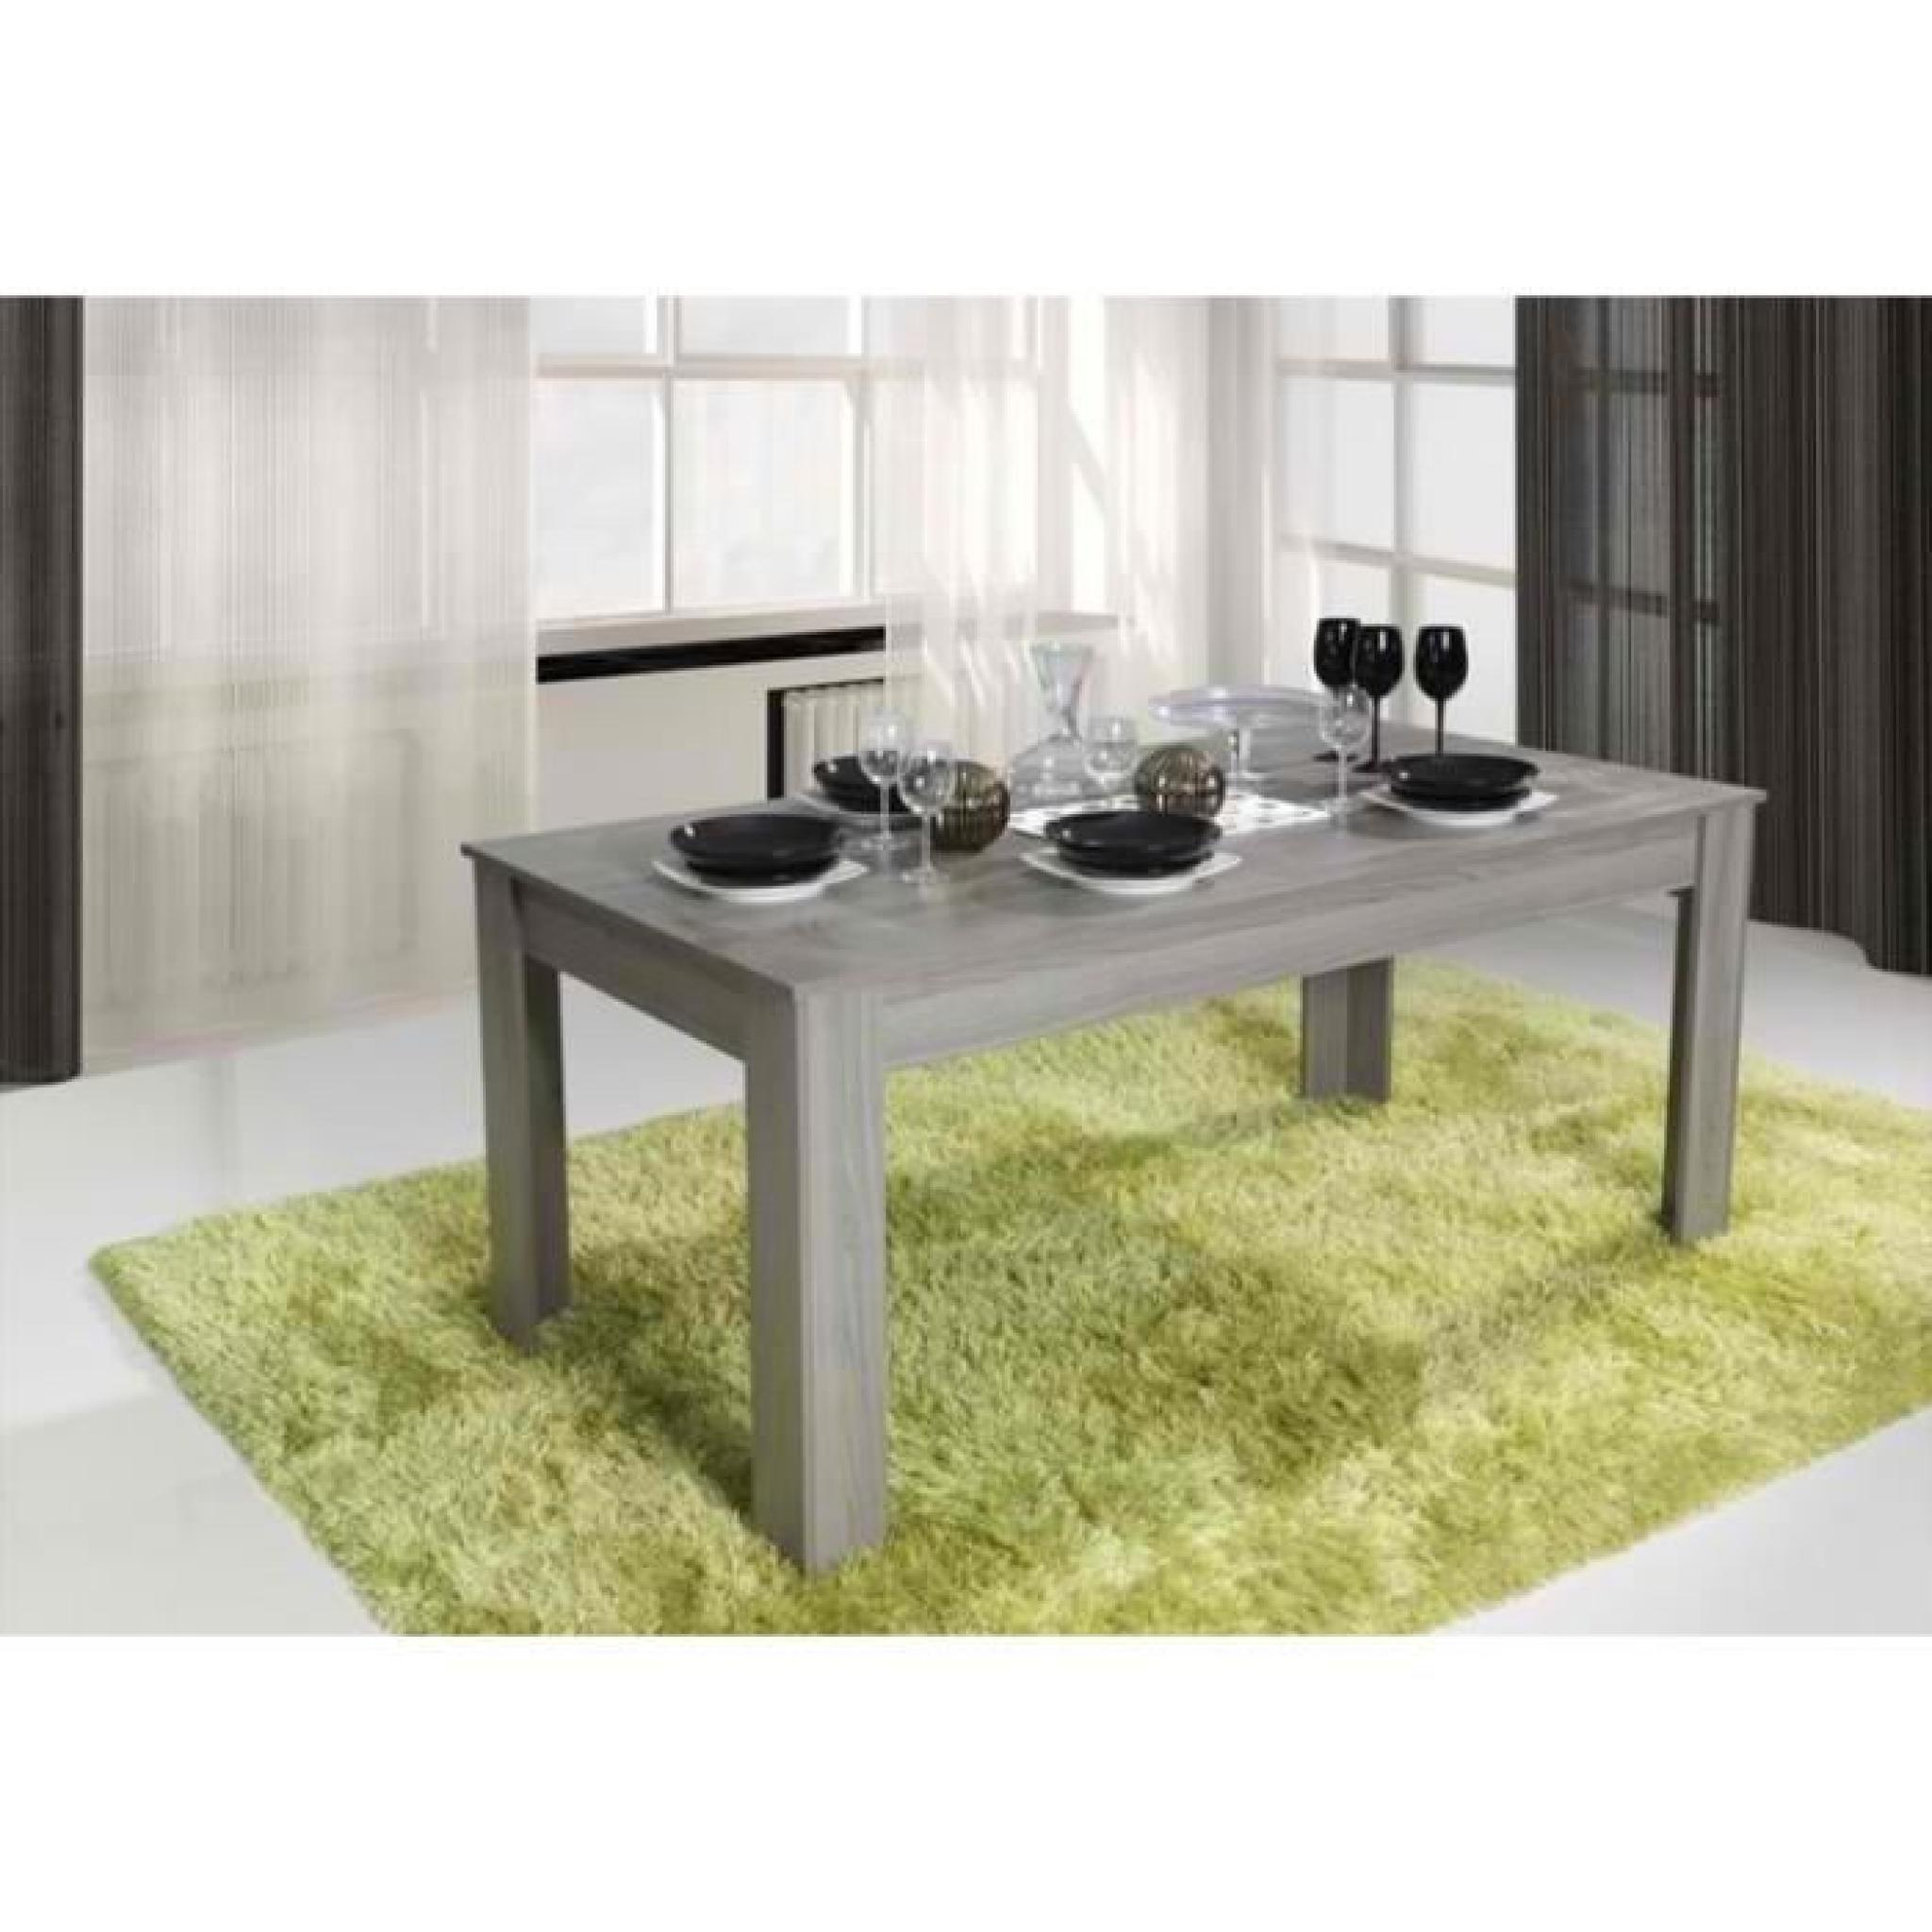 salle manger nany buffet vitrine table 160cm achat vente ensemble salle a manger pas. Black Bedroom Furniture Sets. Home Design Ideas